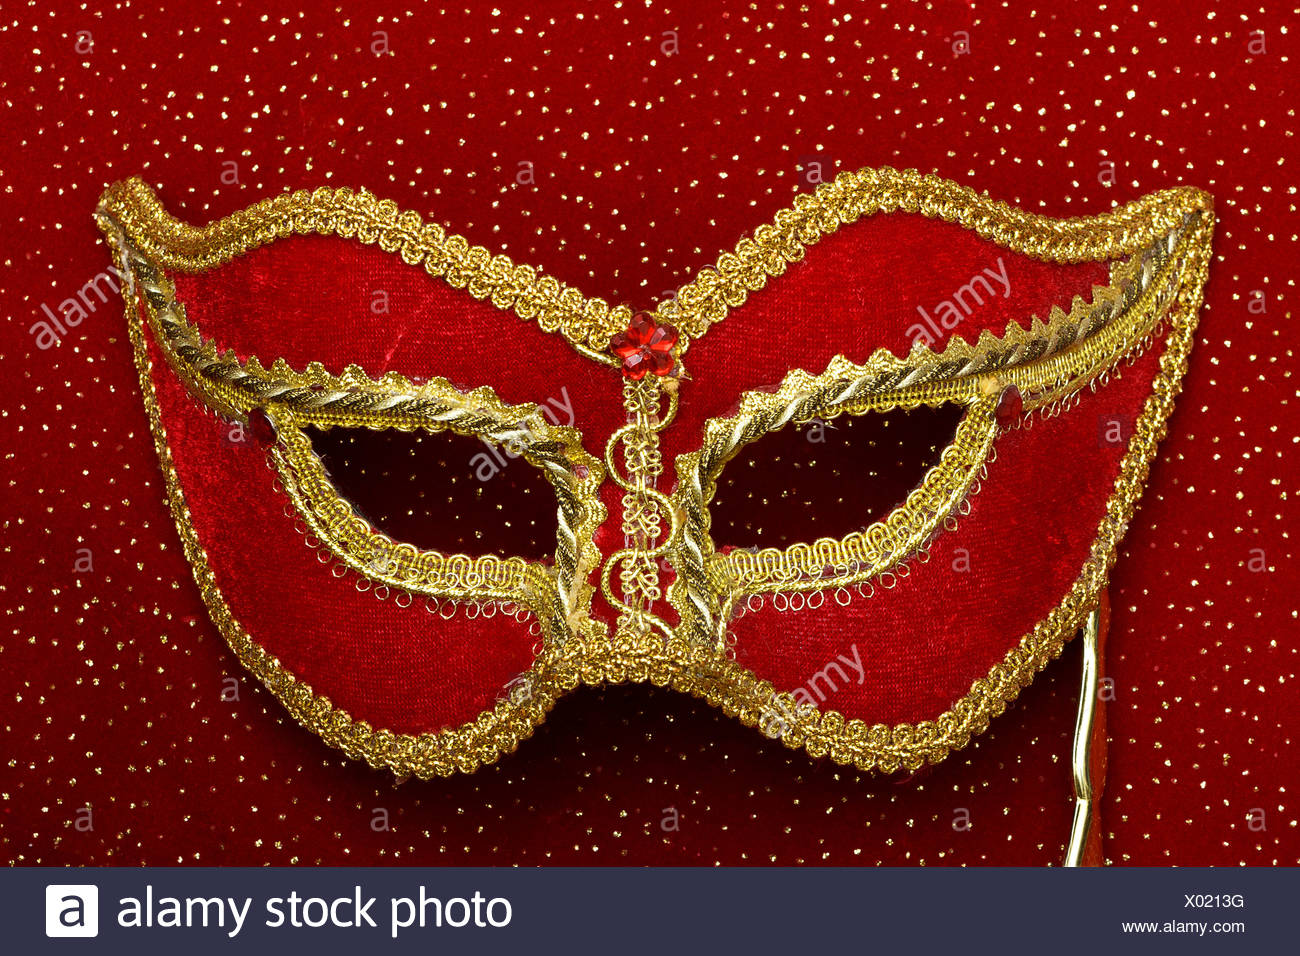 theatrical mask - Stock Image